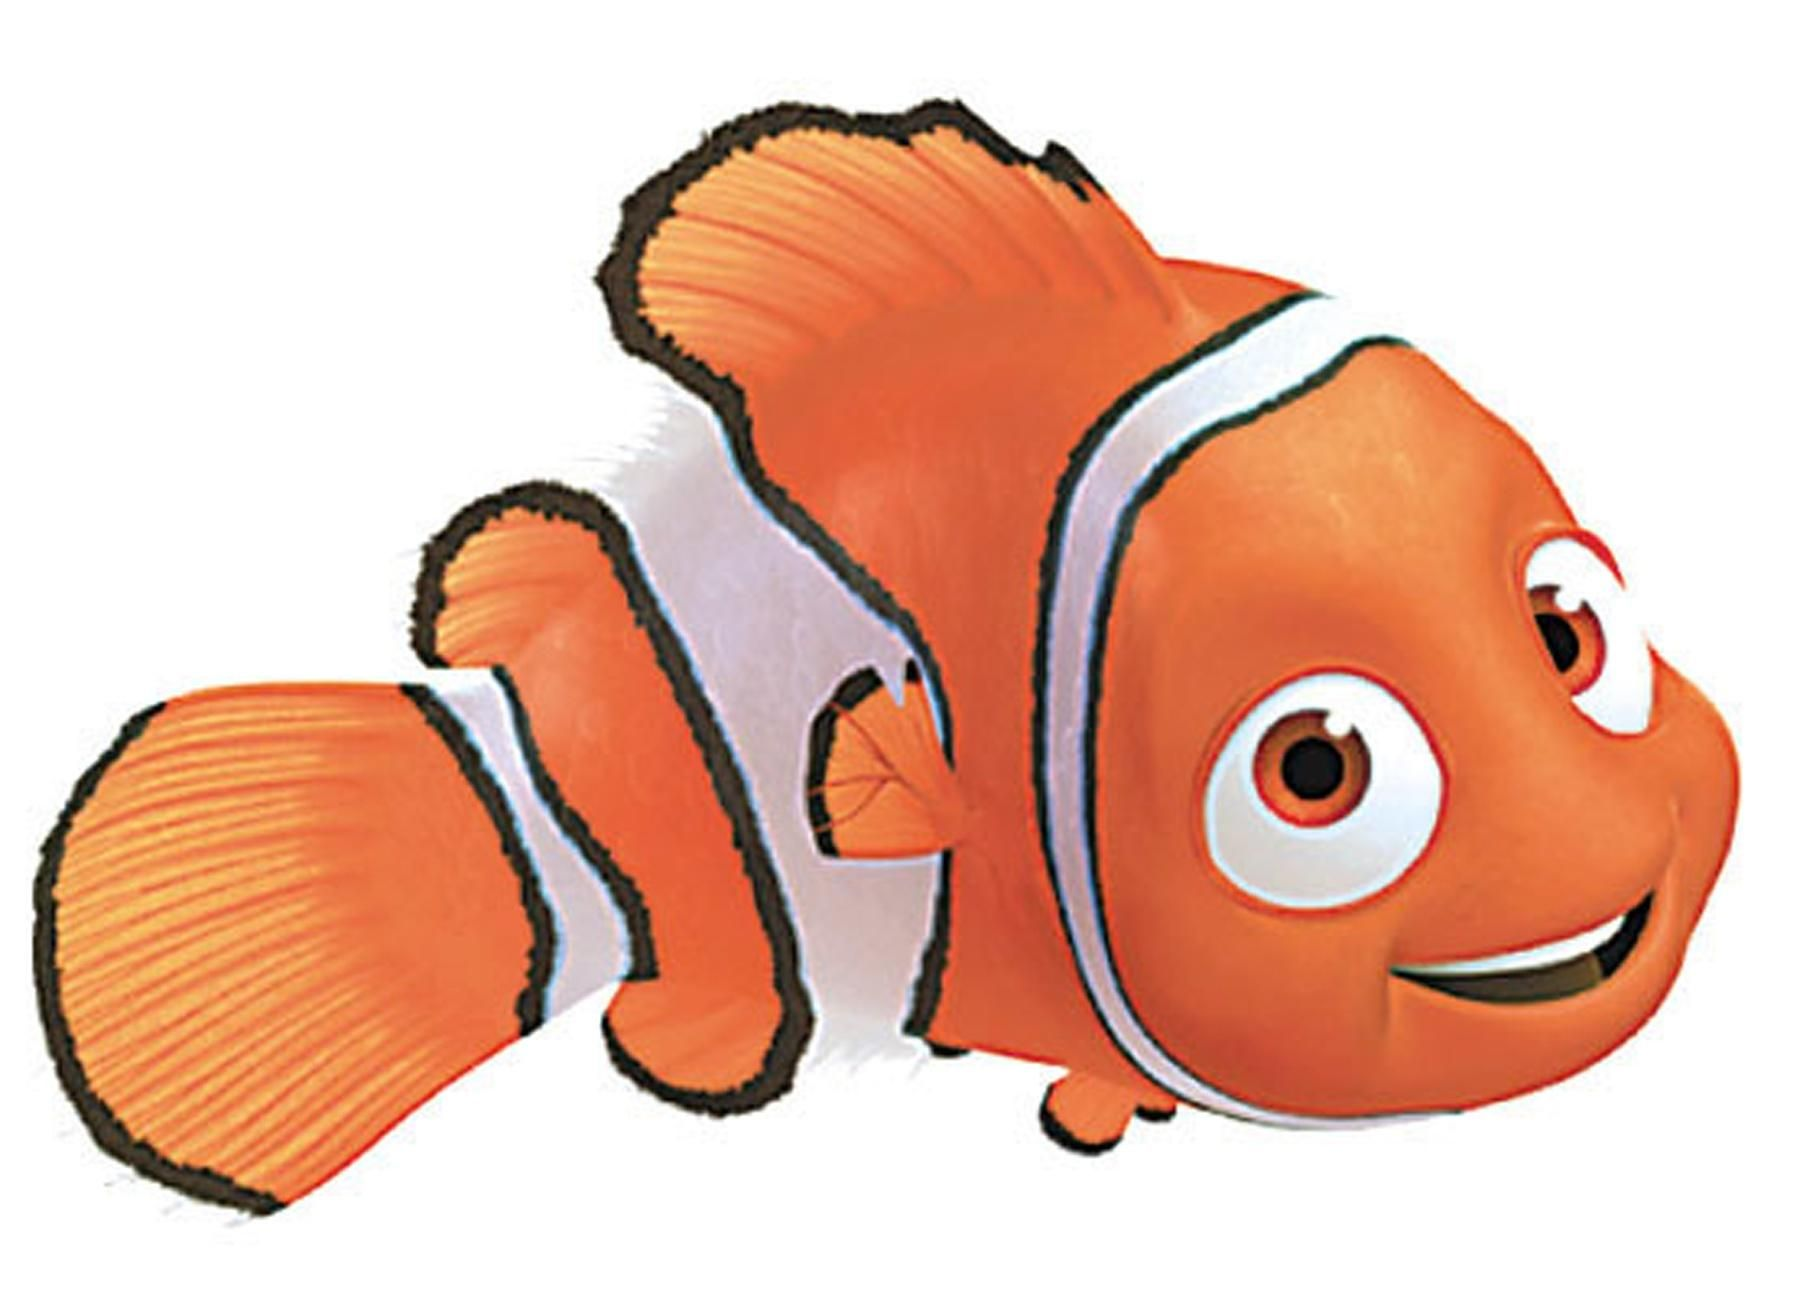 Nemo clipart. This is best finding